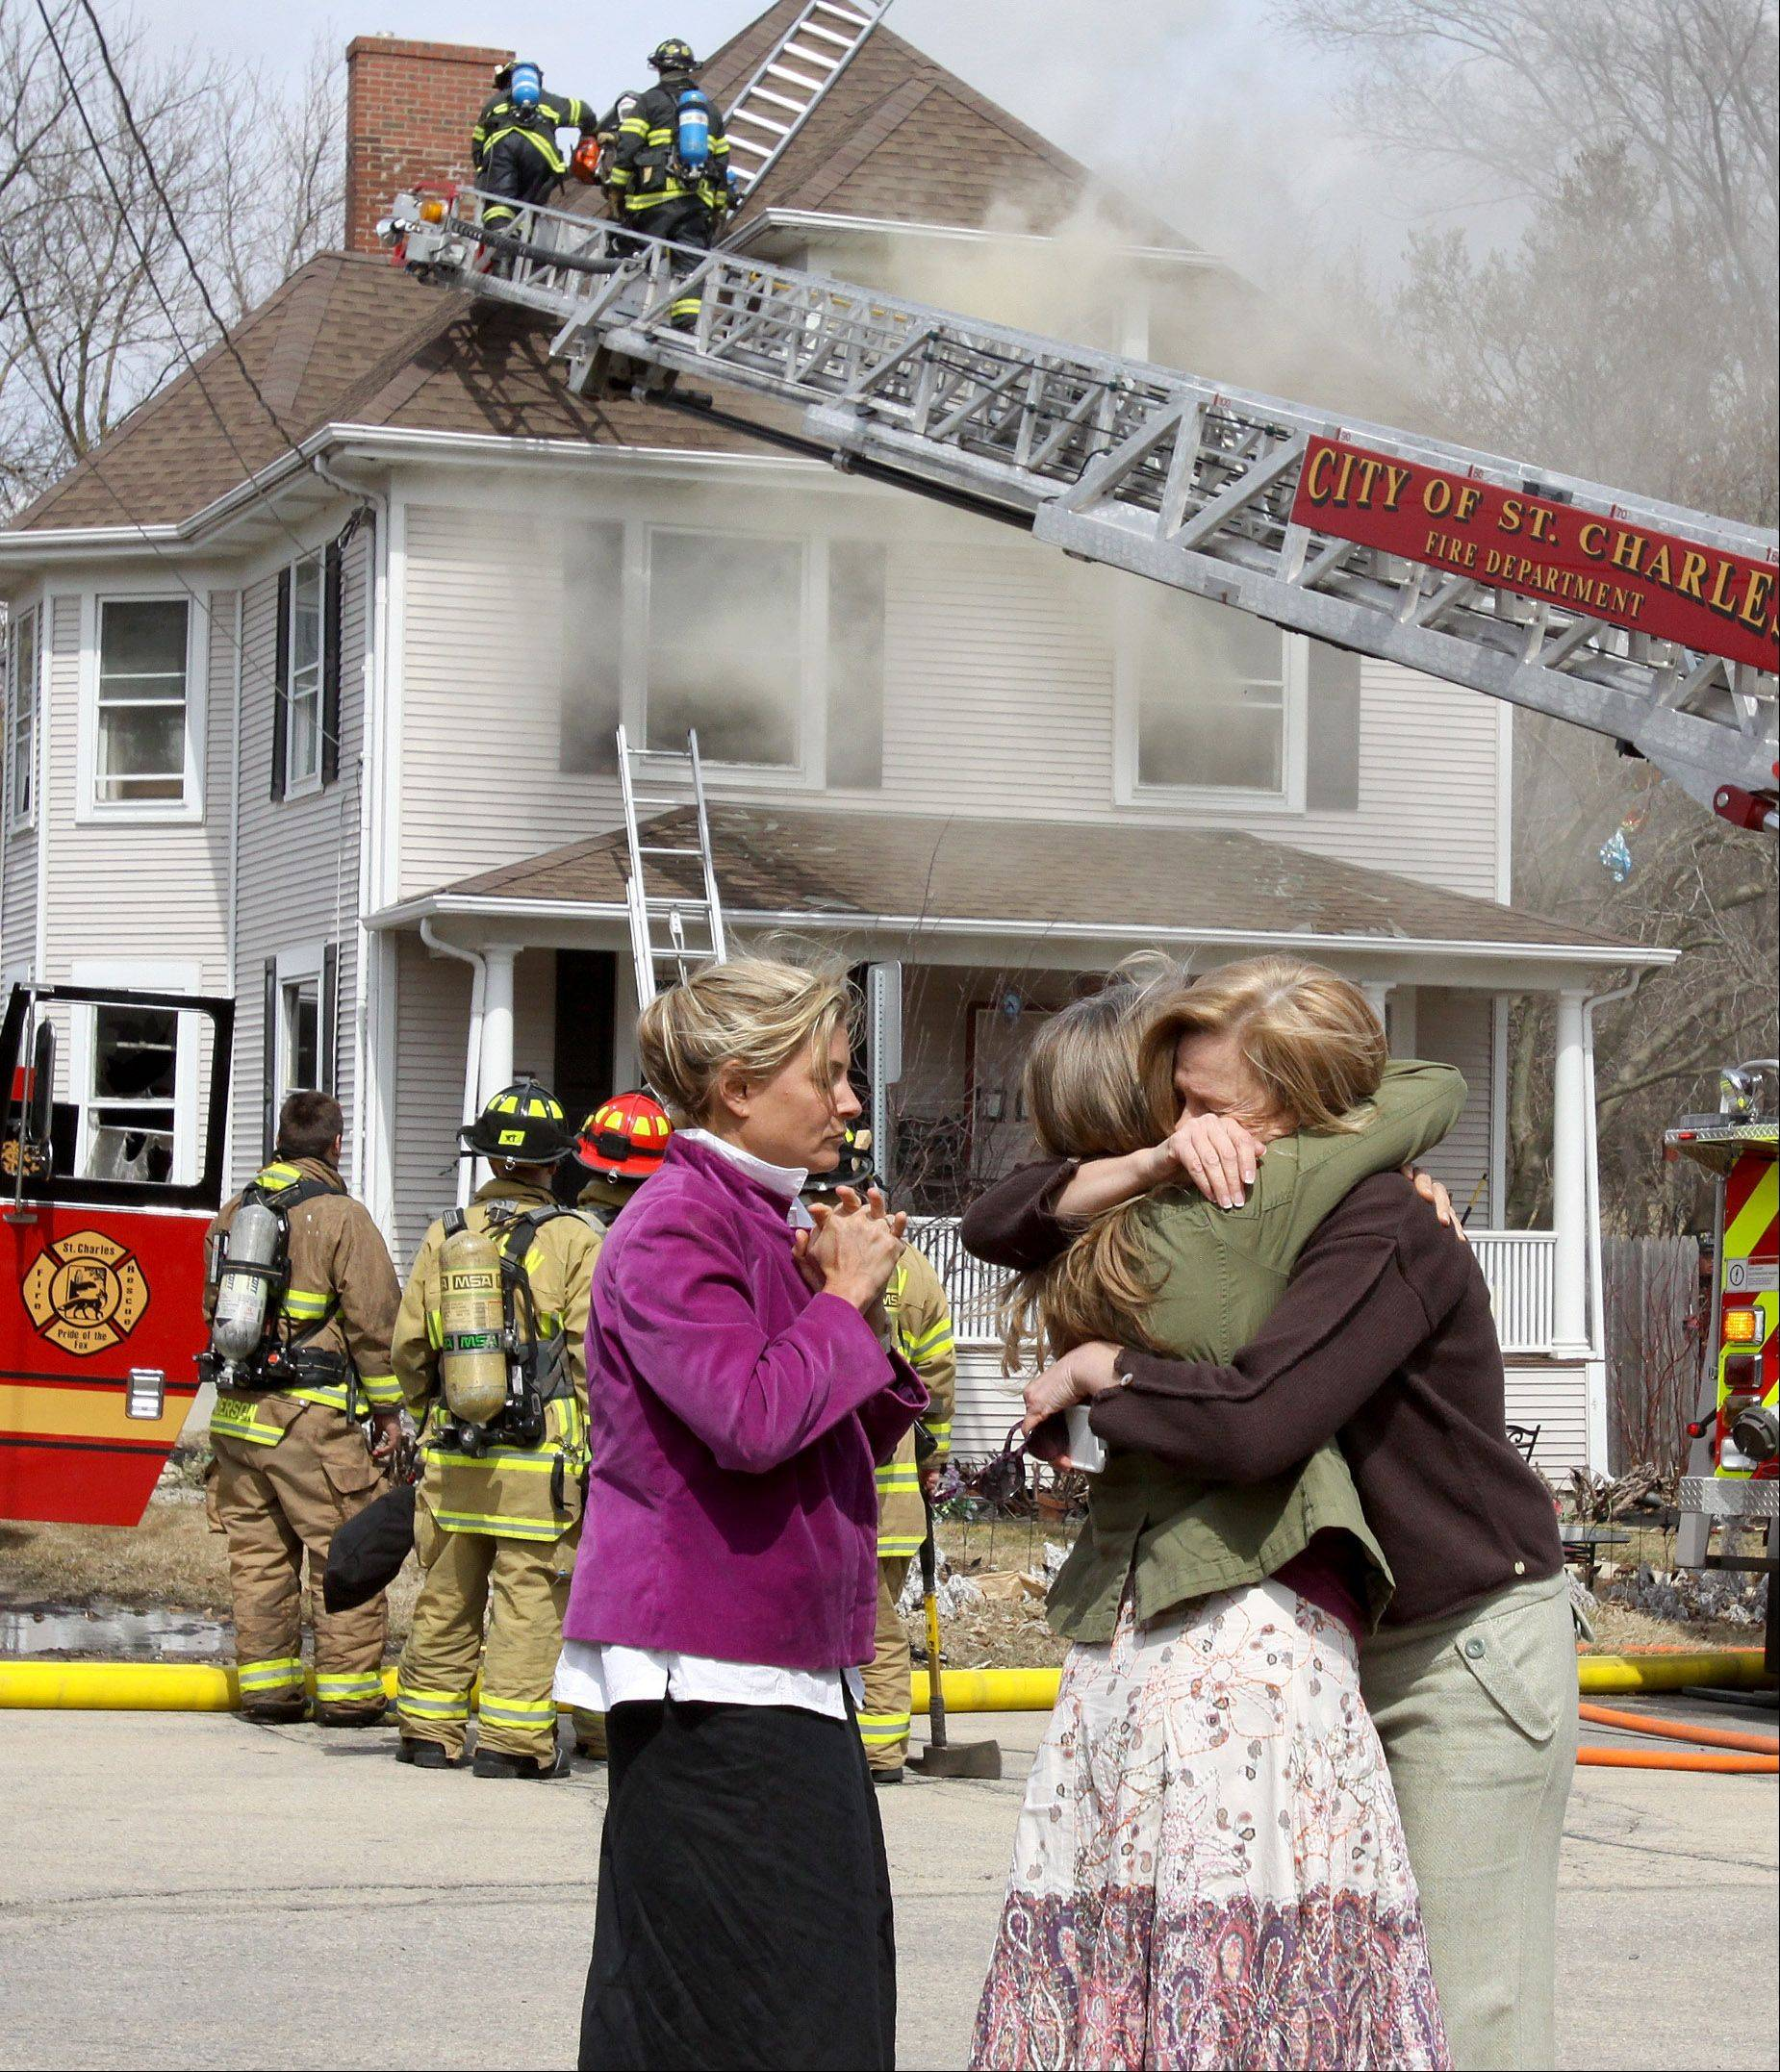 The homeowner, right, is comforted by friends as firefighters battle a fire at her house and business on the 600 block of State Avenue in St. Charles on Sunday.